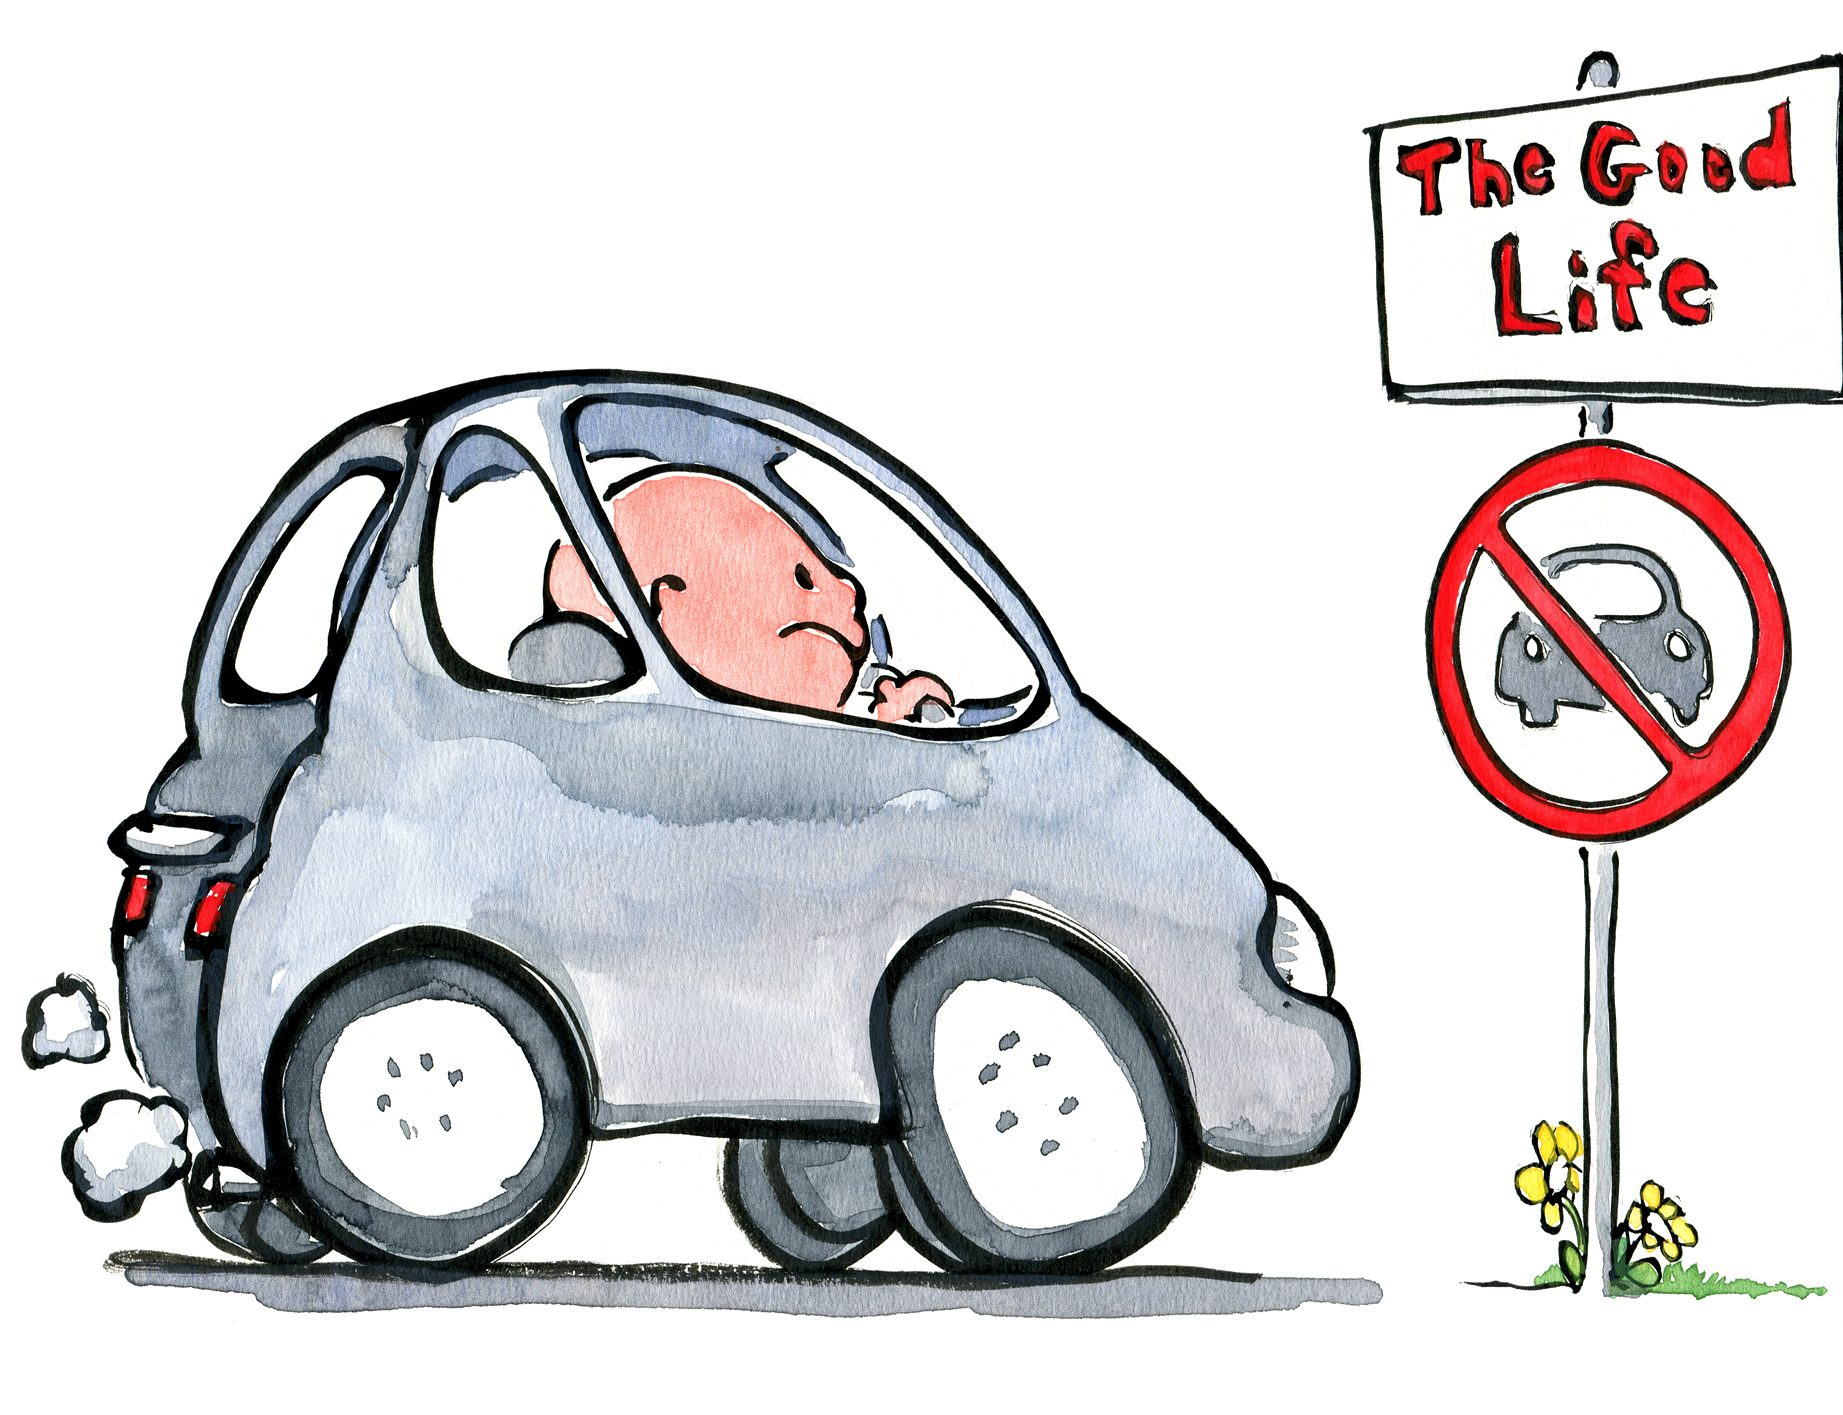 Illustration of a man sitting in his car looking out on the good life trail ahead